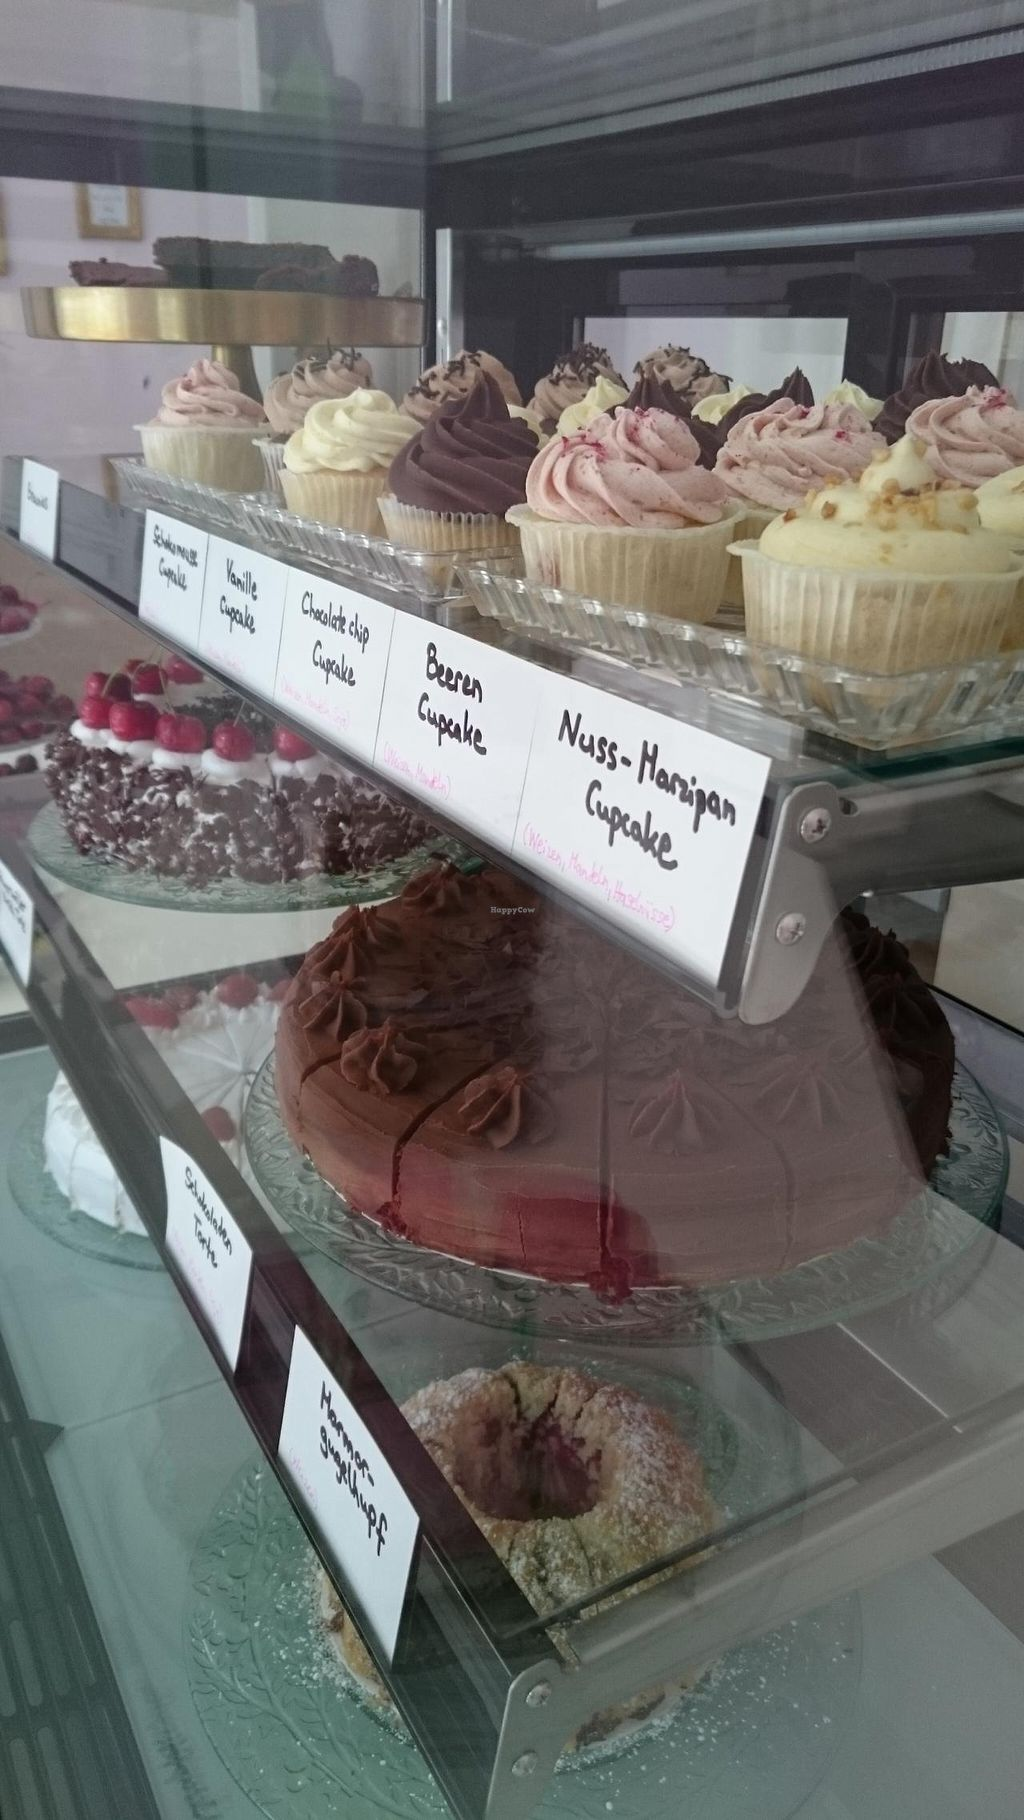 "Photo of CLOSED: NomNom Vegan Bakery  by <a href=""/members/profile/babebibobu"">babebibobu</a> <br/>Cupcakes  <br/> June 20, 2015  - <a href='/contact/abuse/image/58970/106564'>Report</a>"